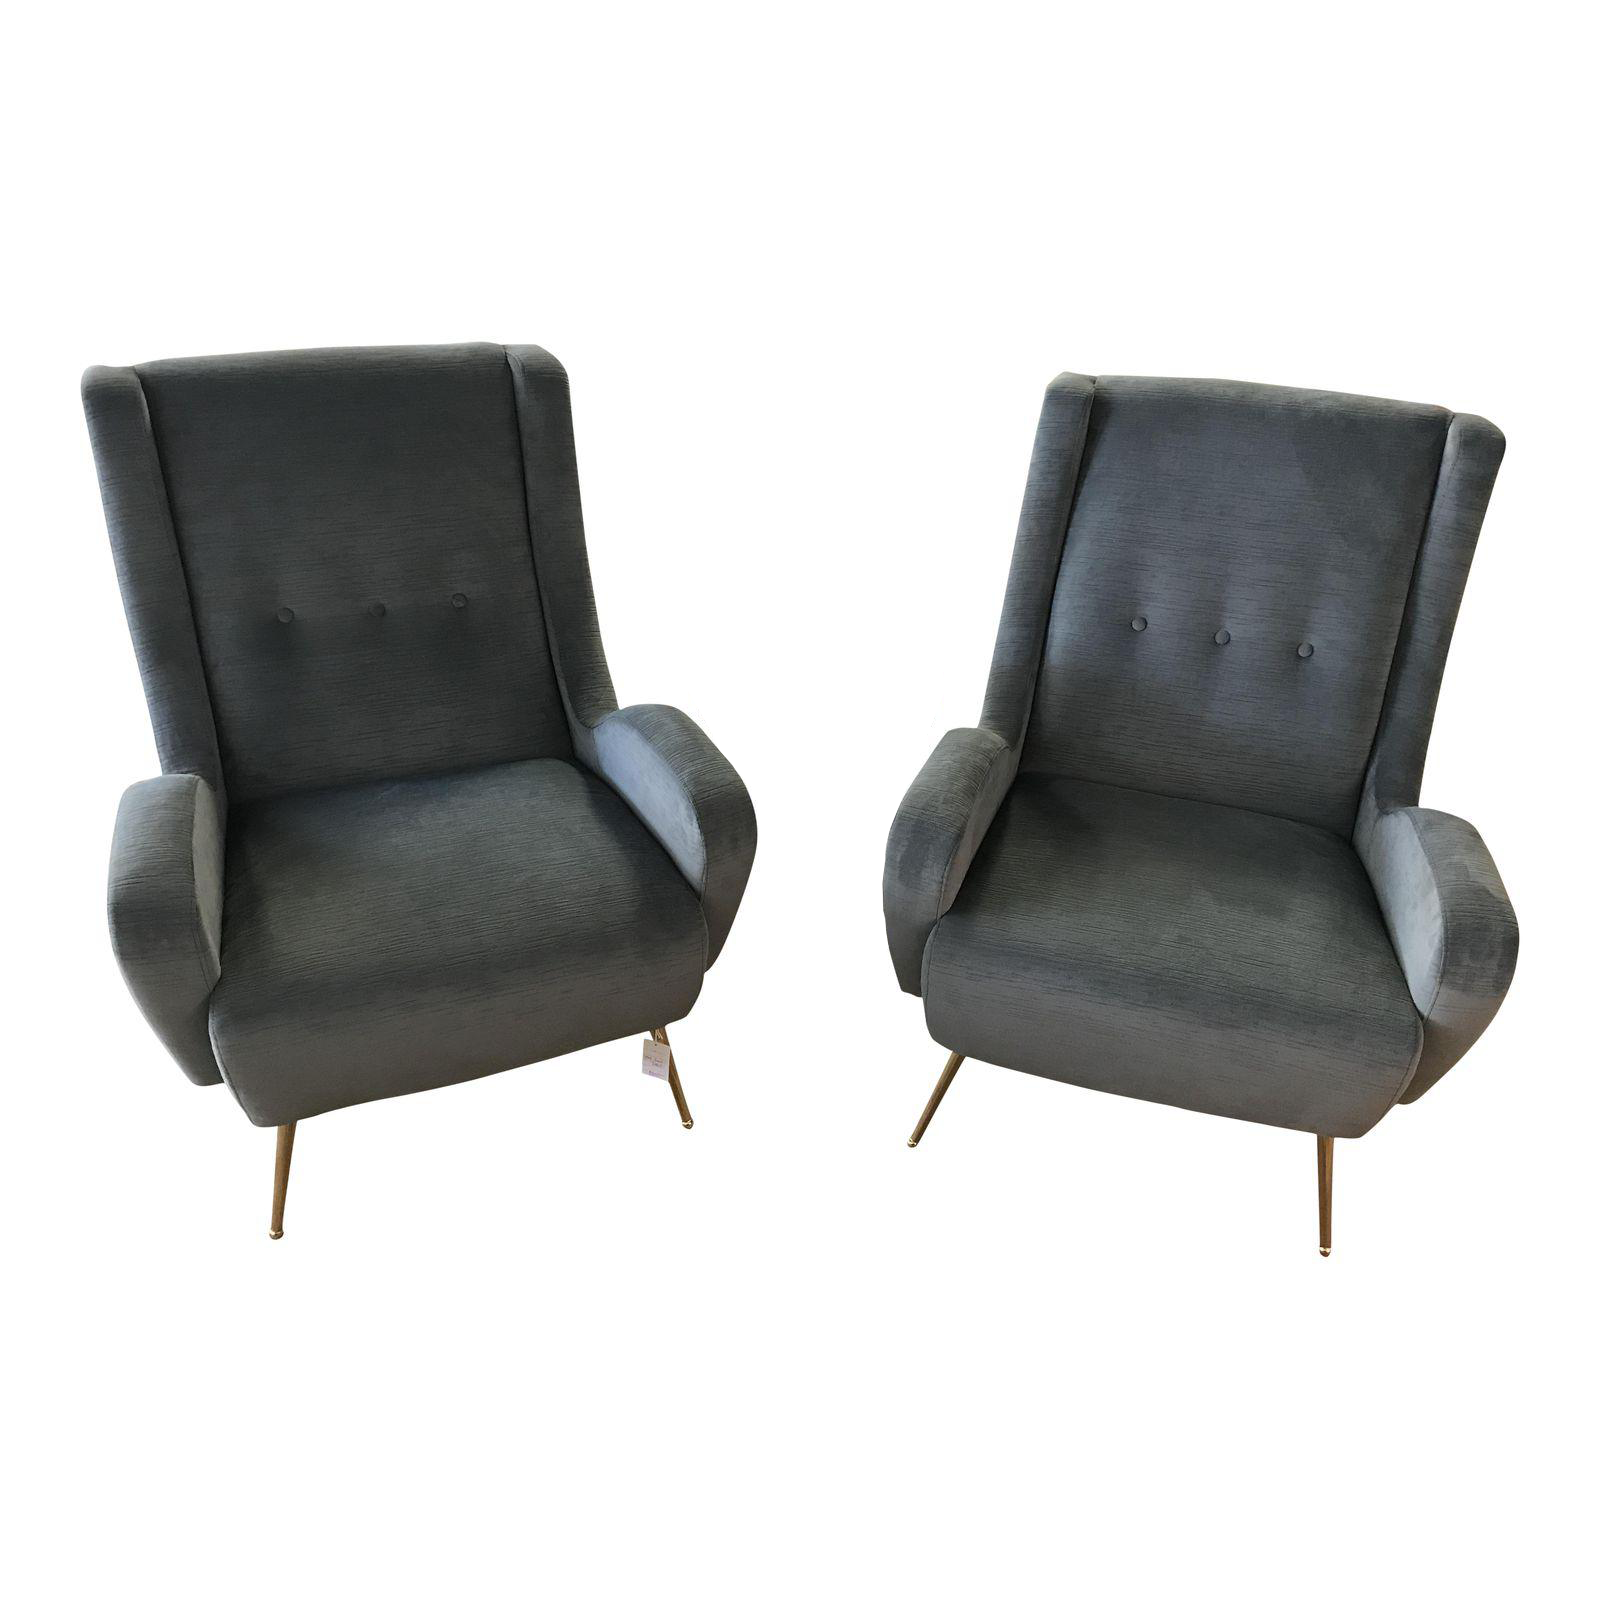 Modern Gray Club Chairs with Brass Stiletto Legs A Pair